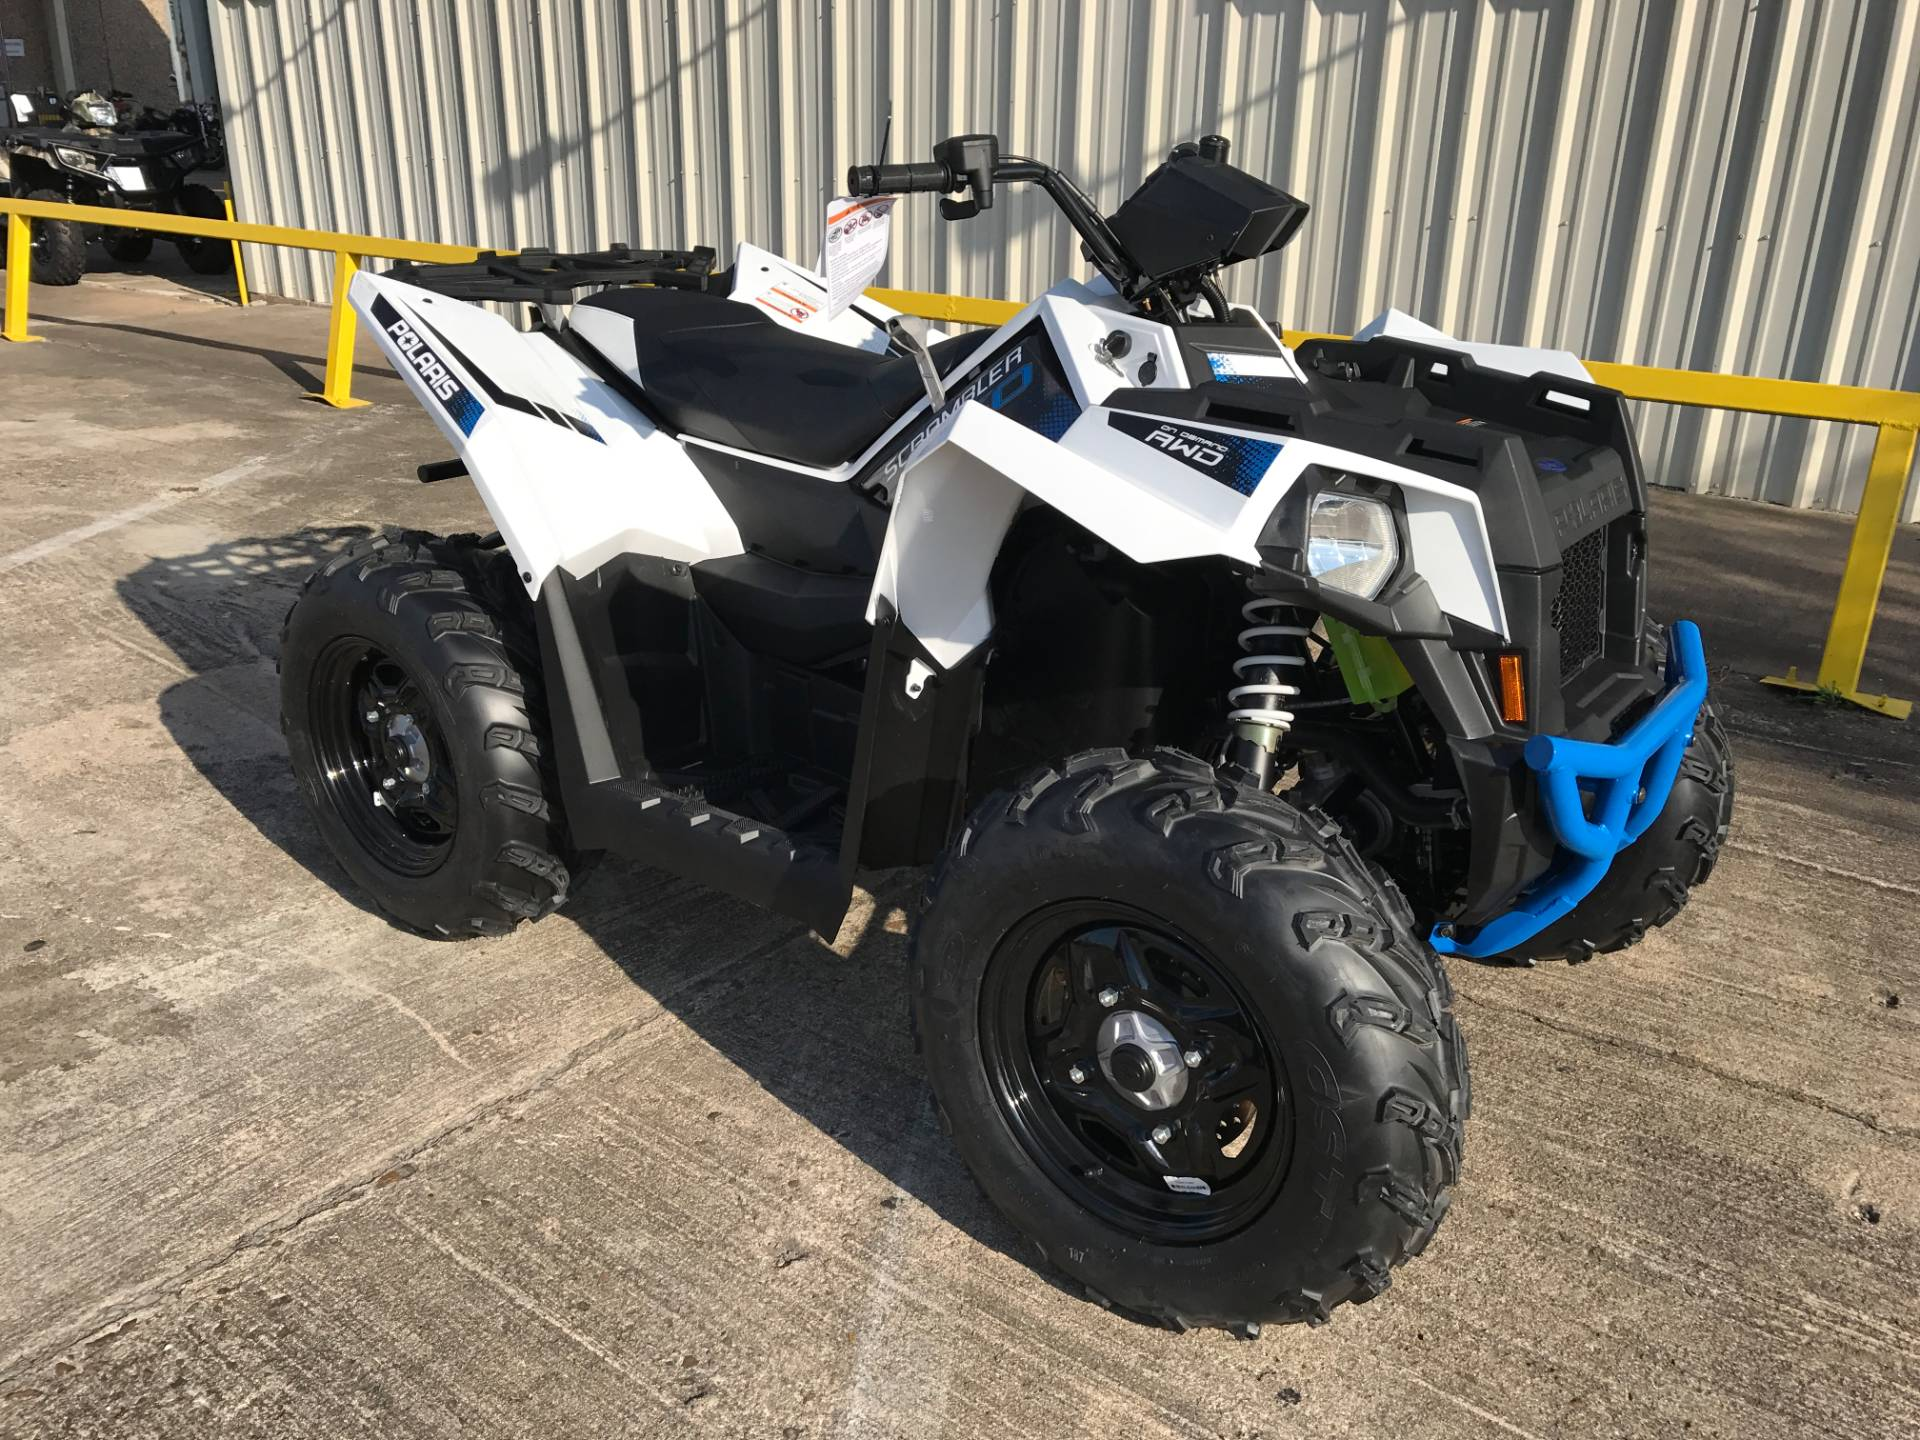 2017 Polaris Scrambler 850 in Pasadena, Texas